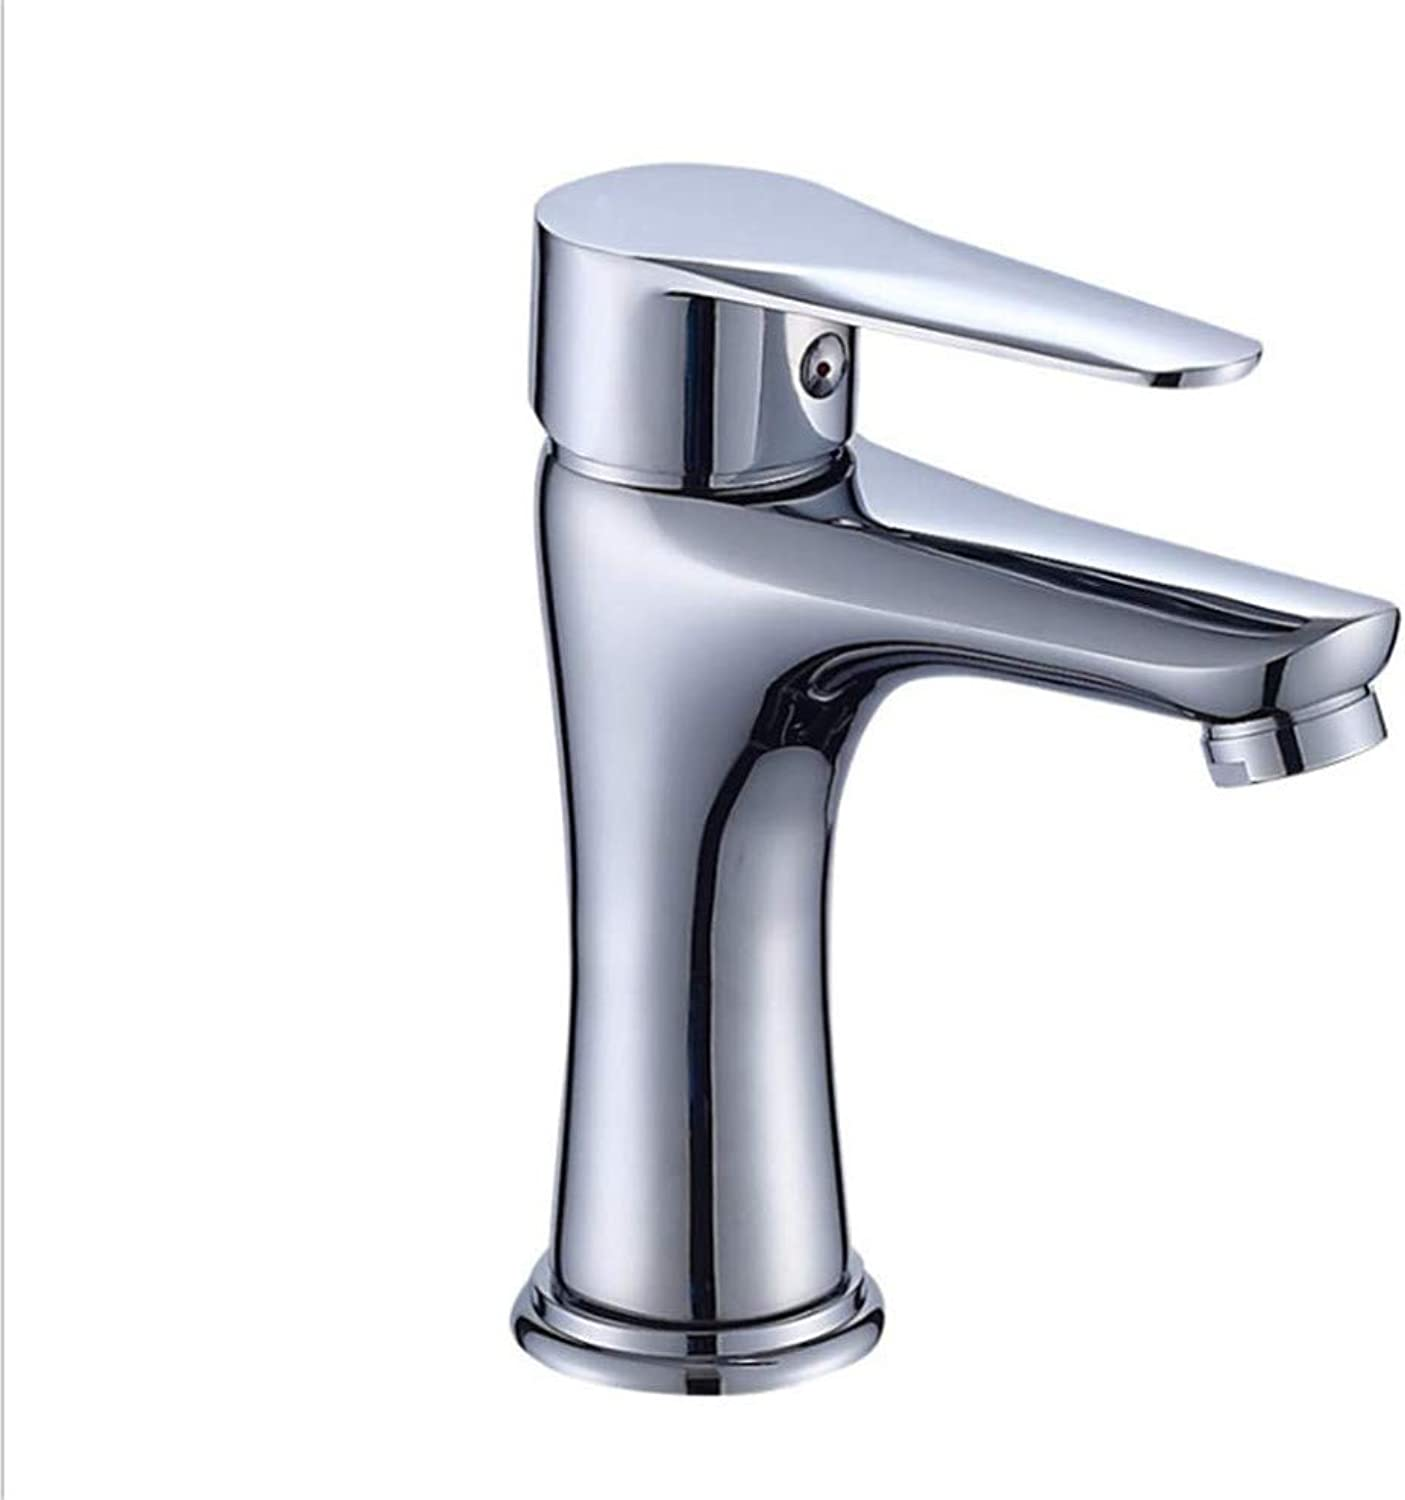 Water Tapdrinking Designer Archbathroom Cold and Hot Basin Faucet Single-Hole Washbasin Faucet Bathroom